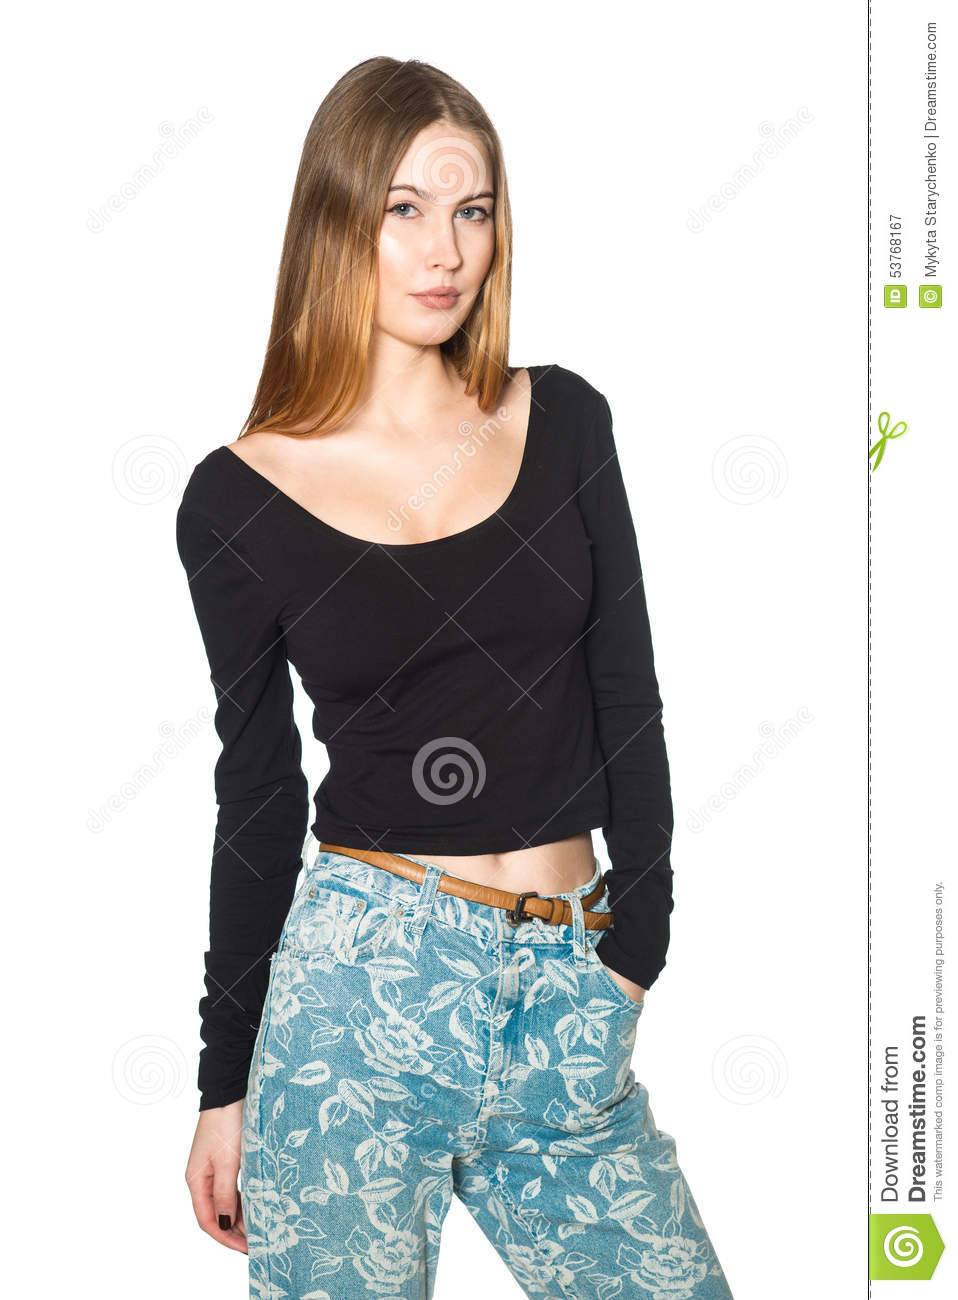 Black t shirt and jeans - Beautiful Young Woman Posing Wearing Black T Shirt And Jeans Stock Photo